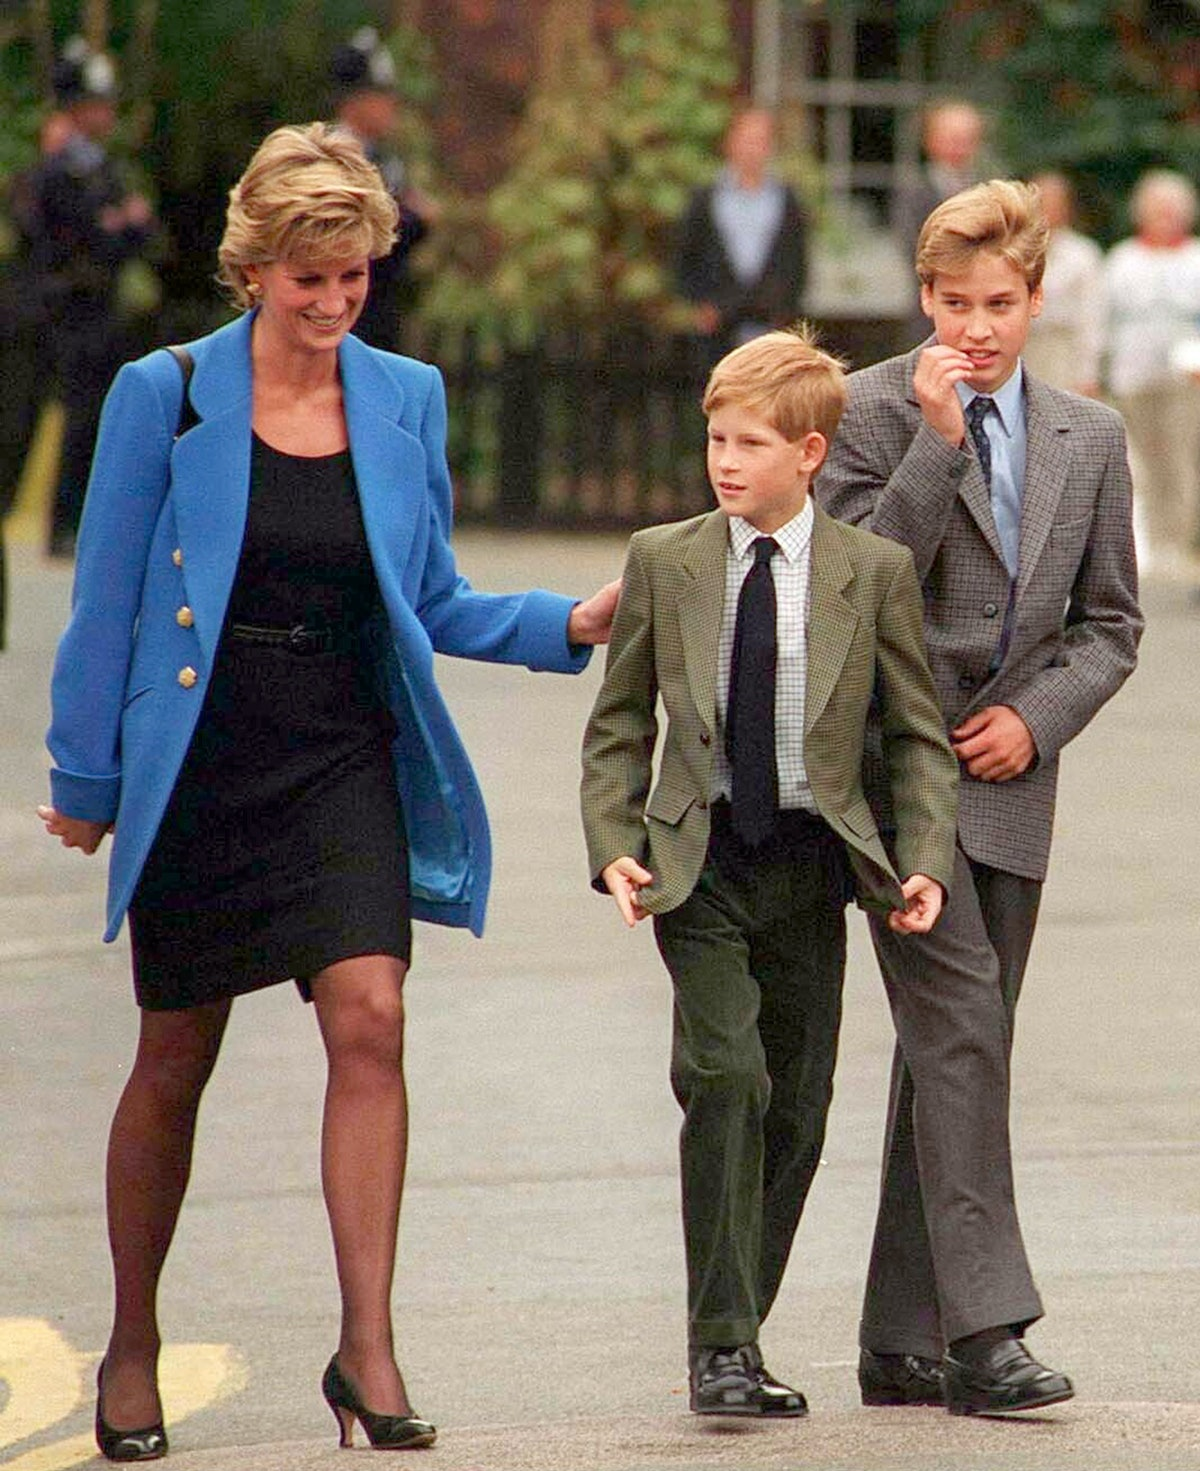 Princess Diana, shown here with her sons William and Harry, was recently honored at a statue unveili...